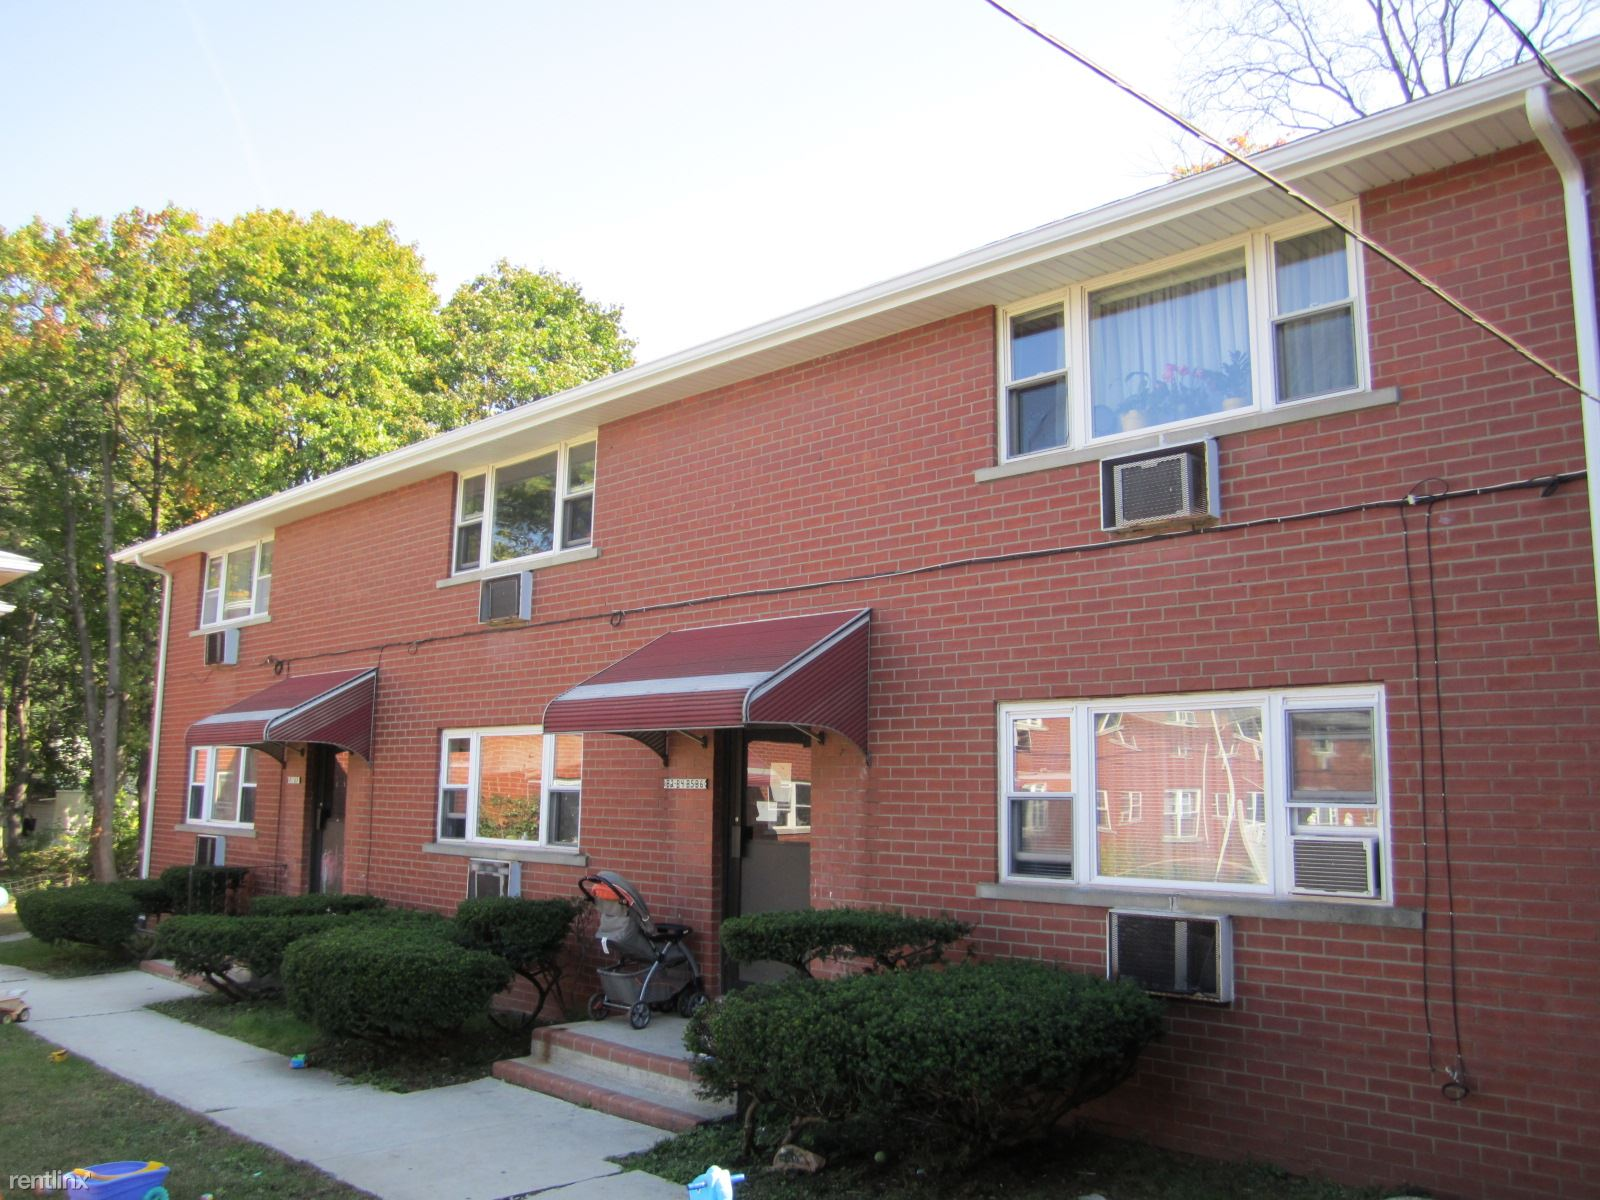 105 Ramsdell St Apt A6